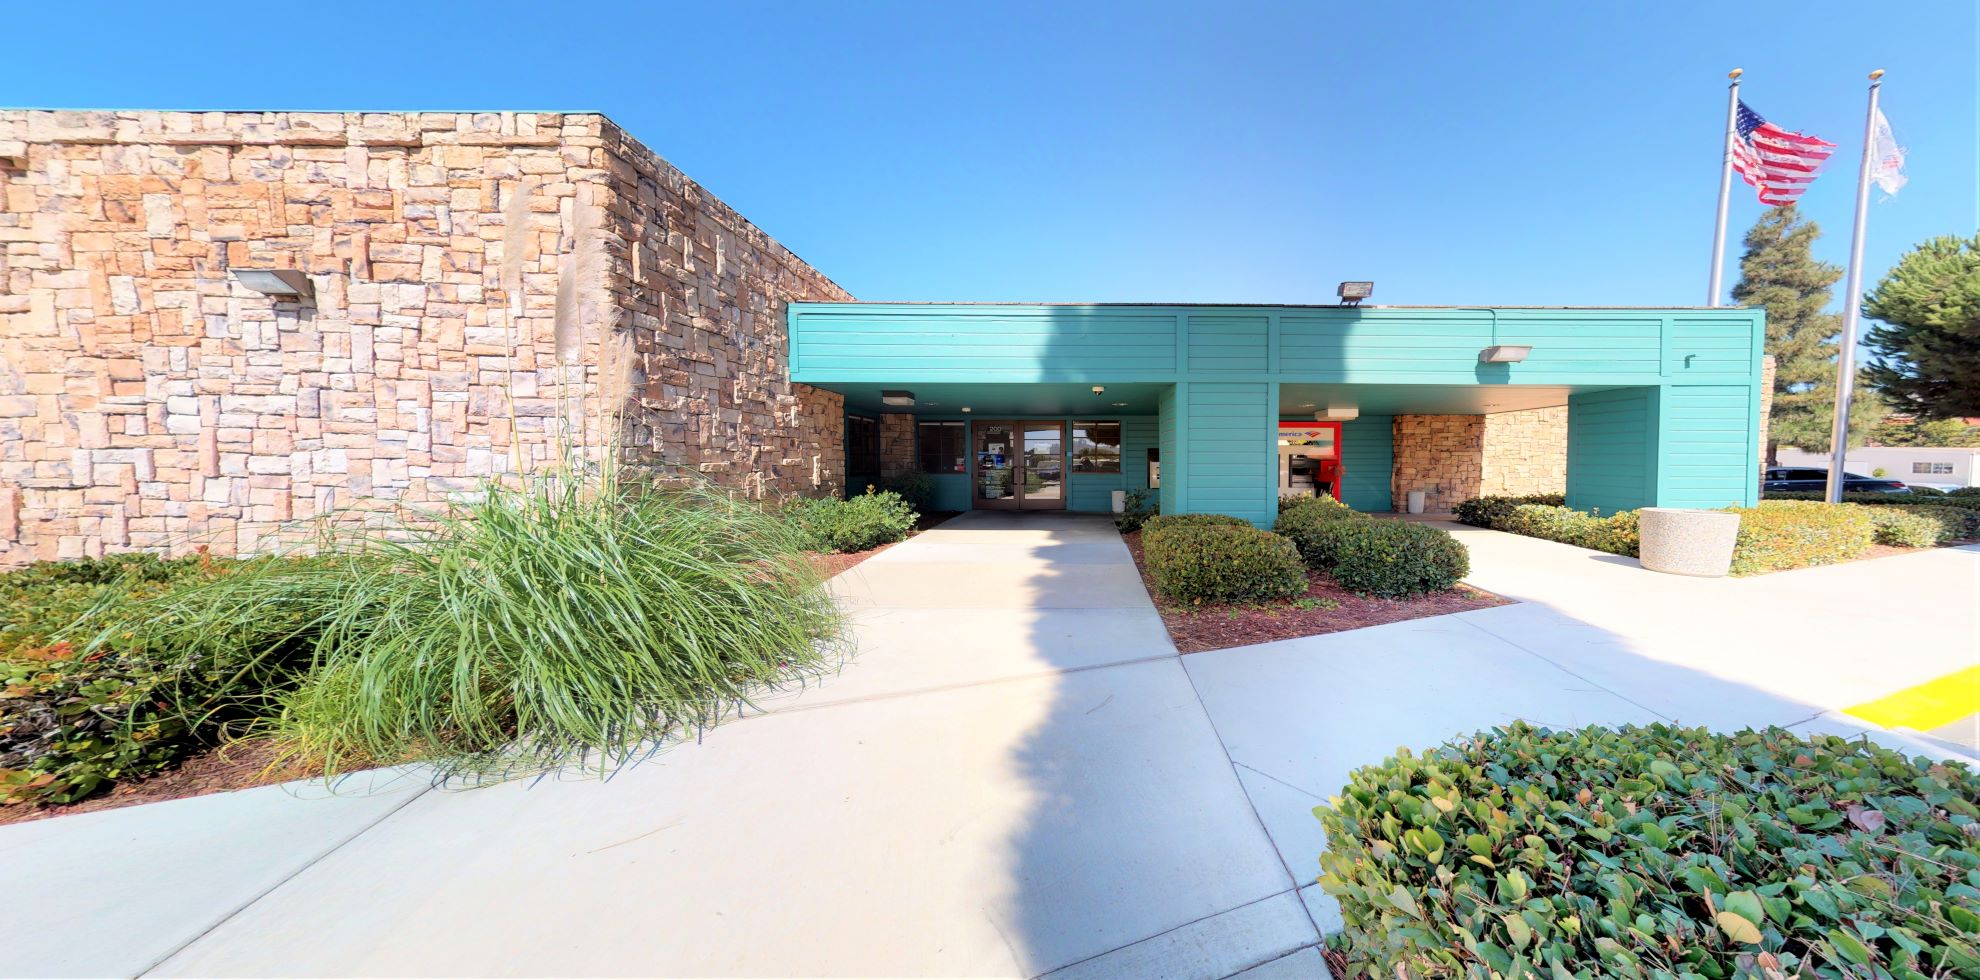 Bank of America financial center with walk-up ATM | 200 W Branch St, Arroyo Grande, CA 93420